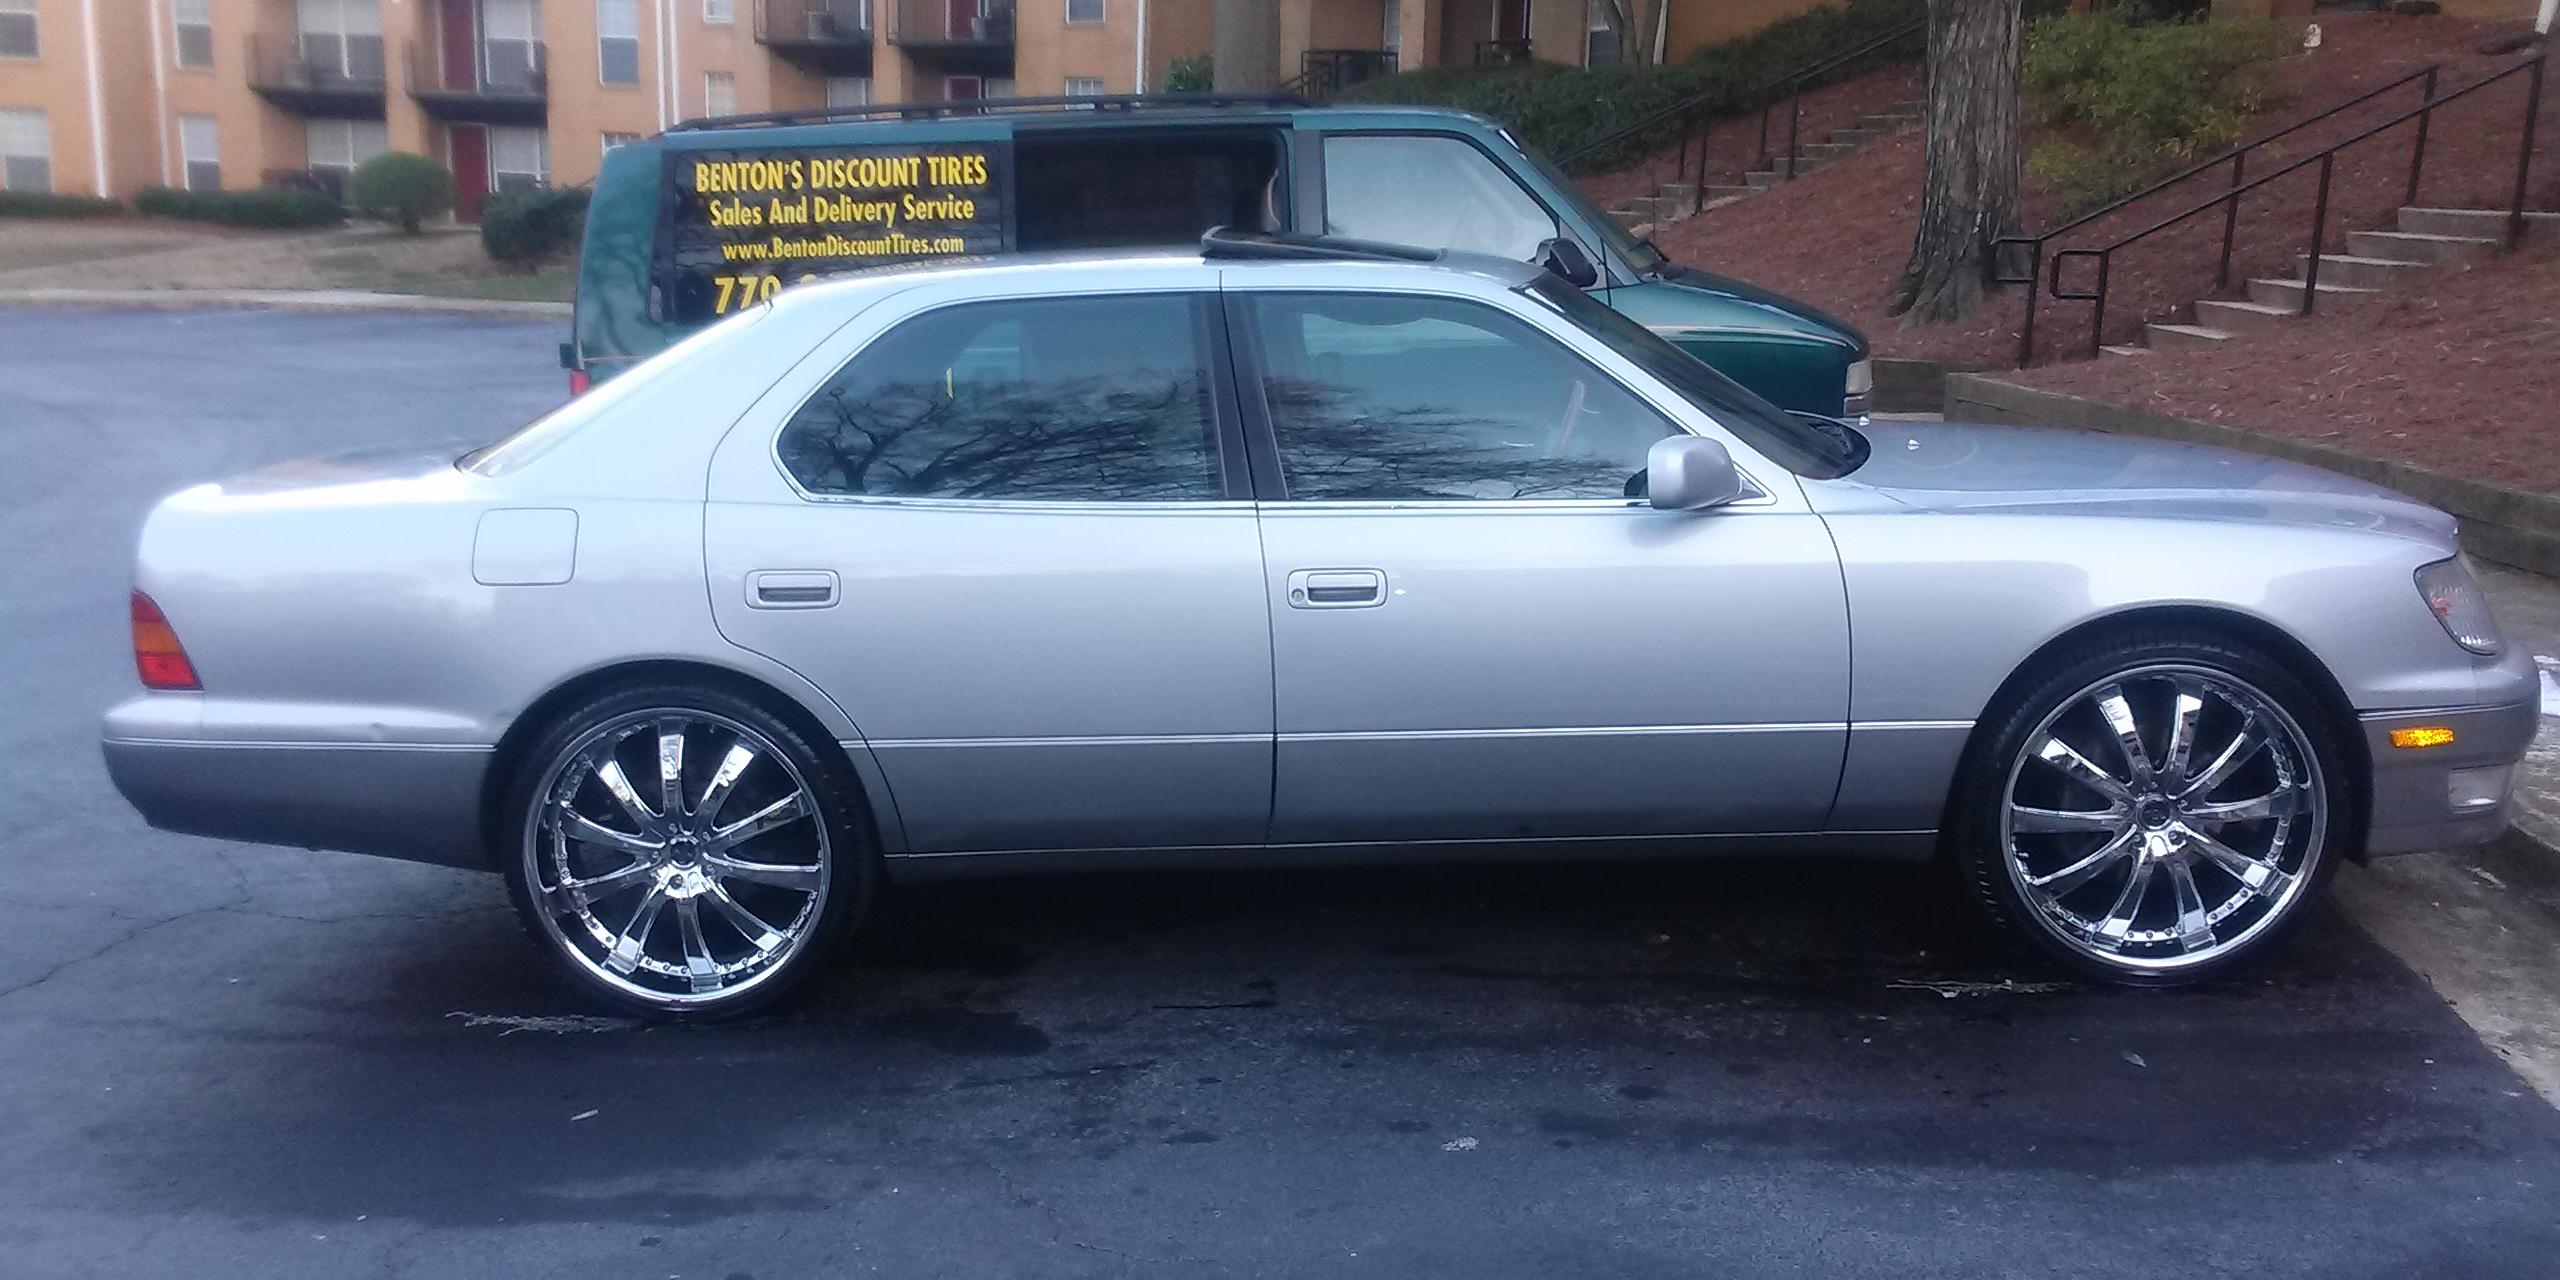 1996 Lexus Ls400 Lexus Ls View All Lexus Ls At Cardomain